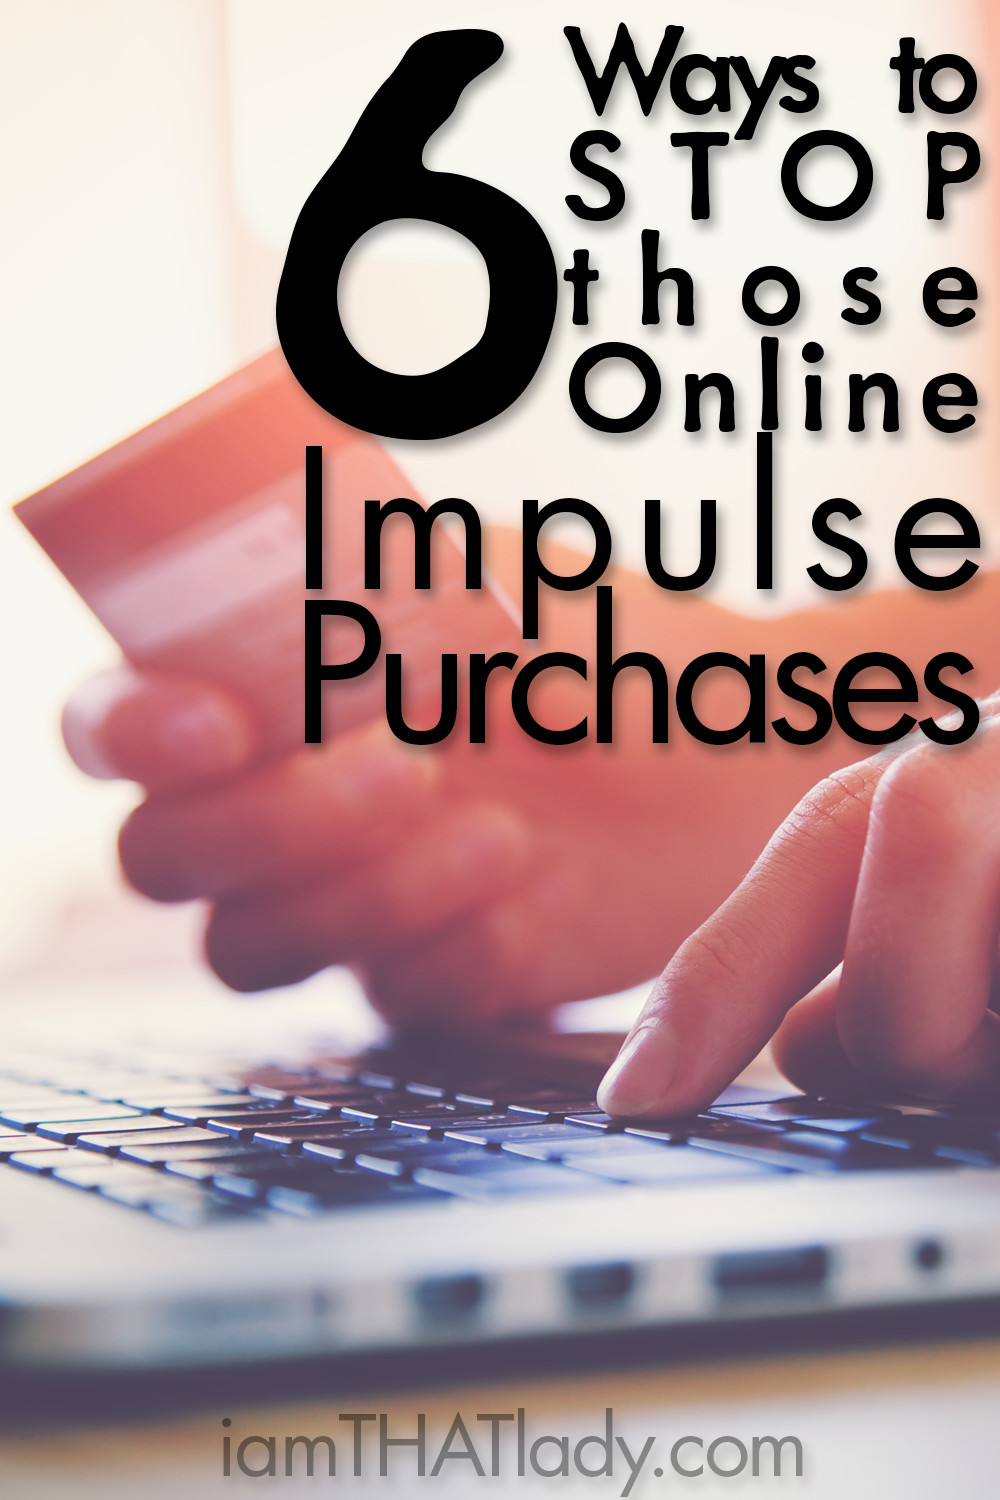 6 Ways to STOP those Online Impulse Purchases